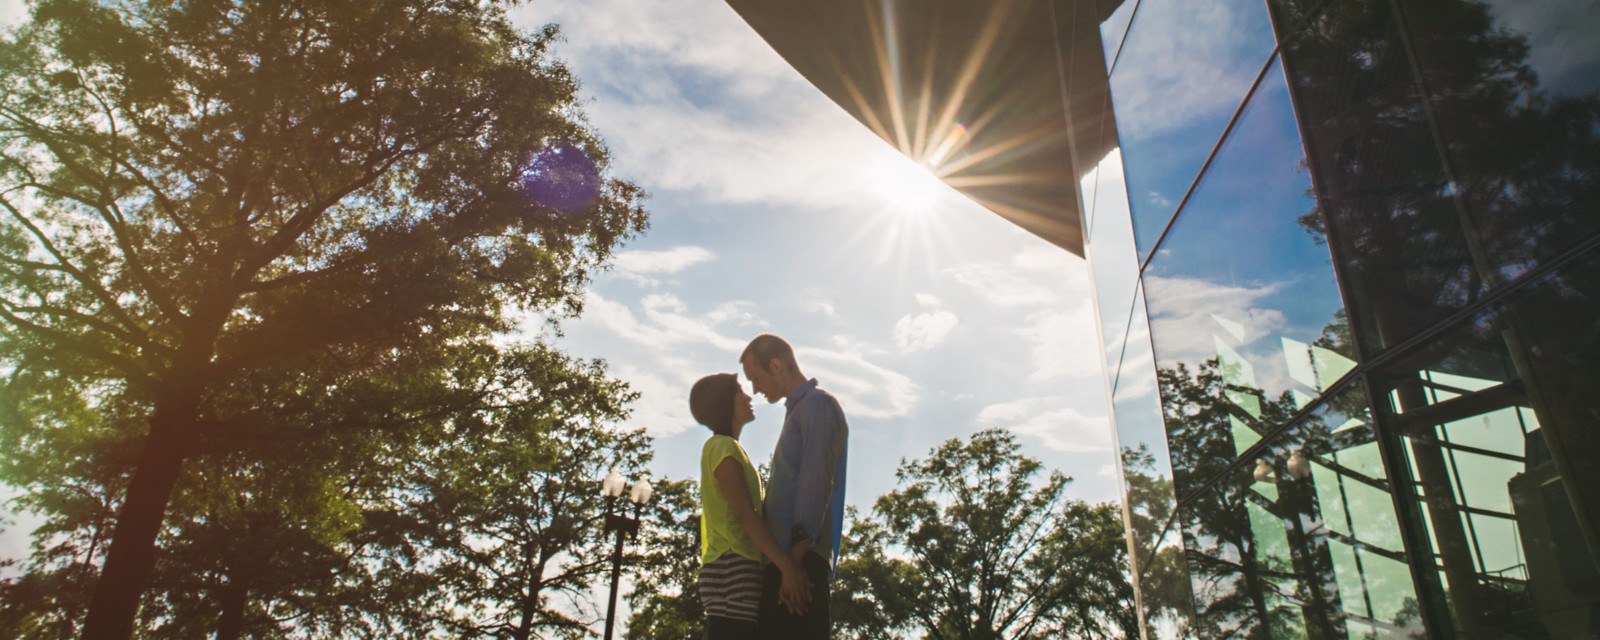 dc engagement photos // michelle + john